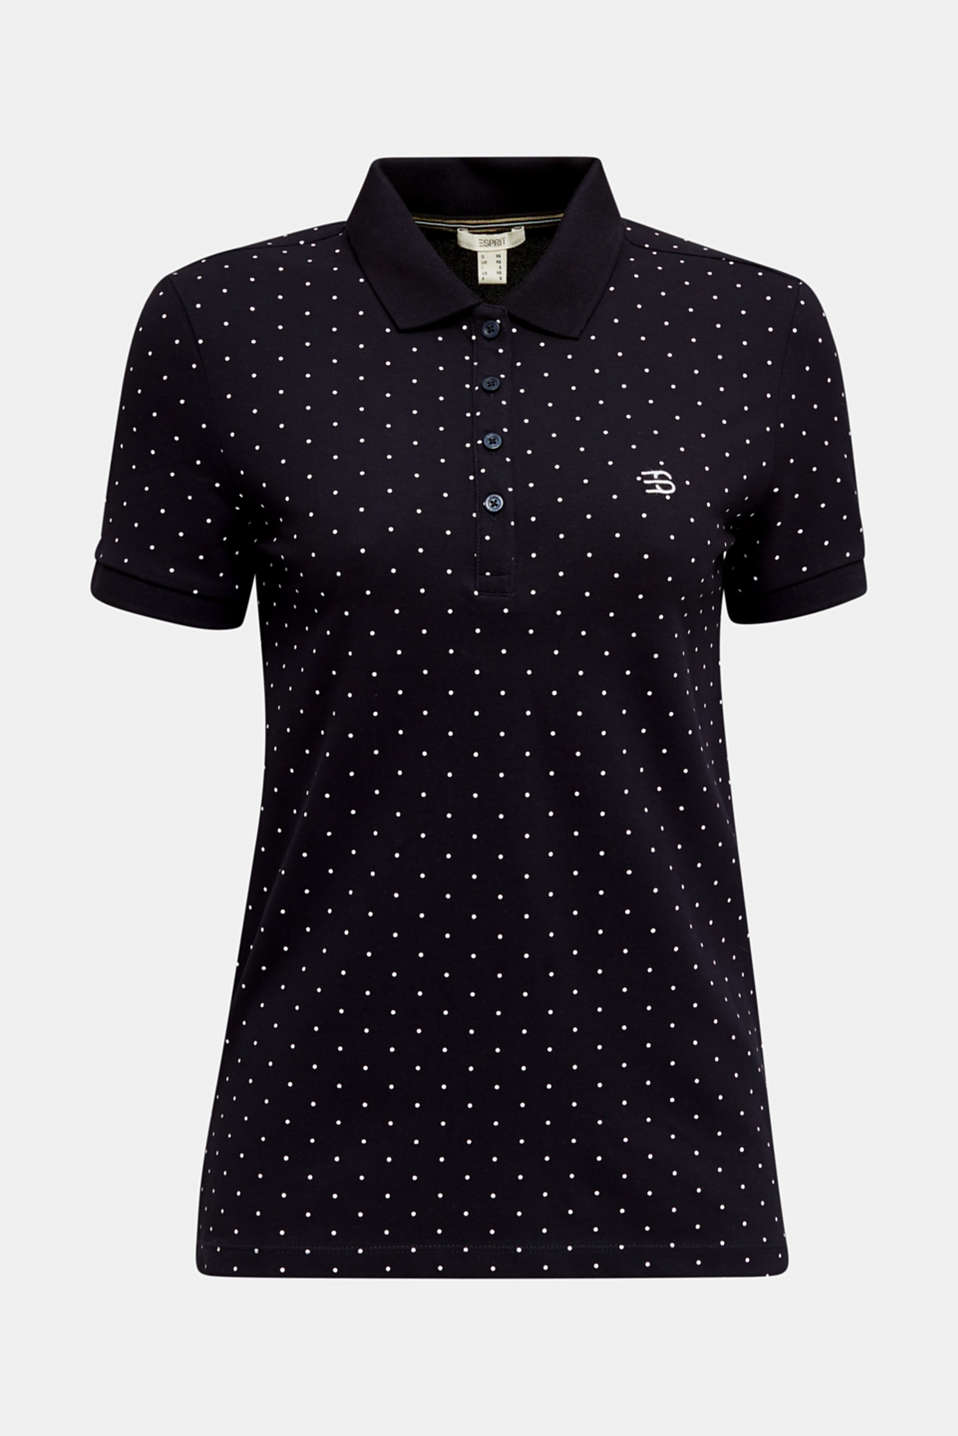 Piqué polo shirt with a polka dot print, NAVY, detail image number 6